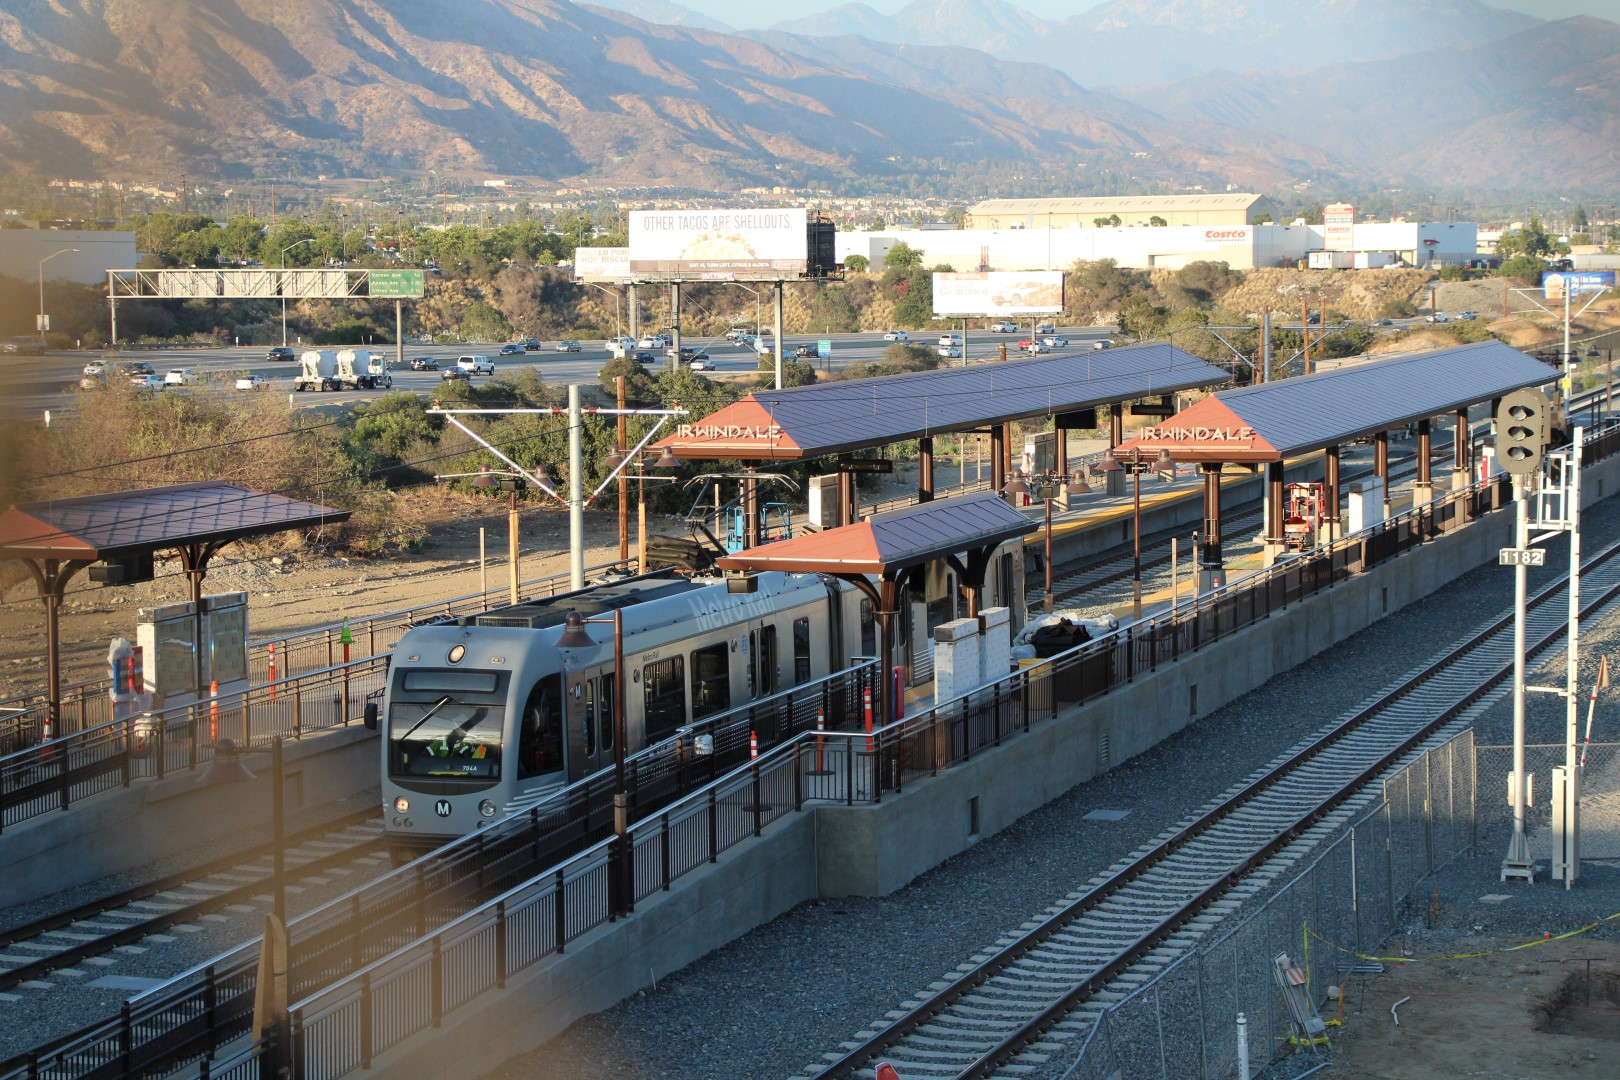 A test train leaving the Irwindale Station.